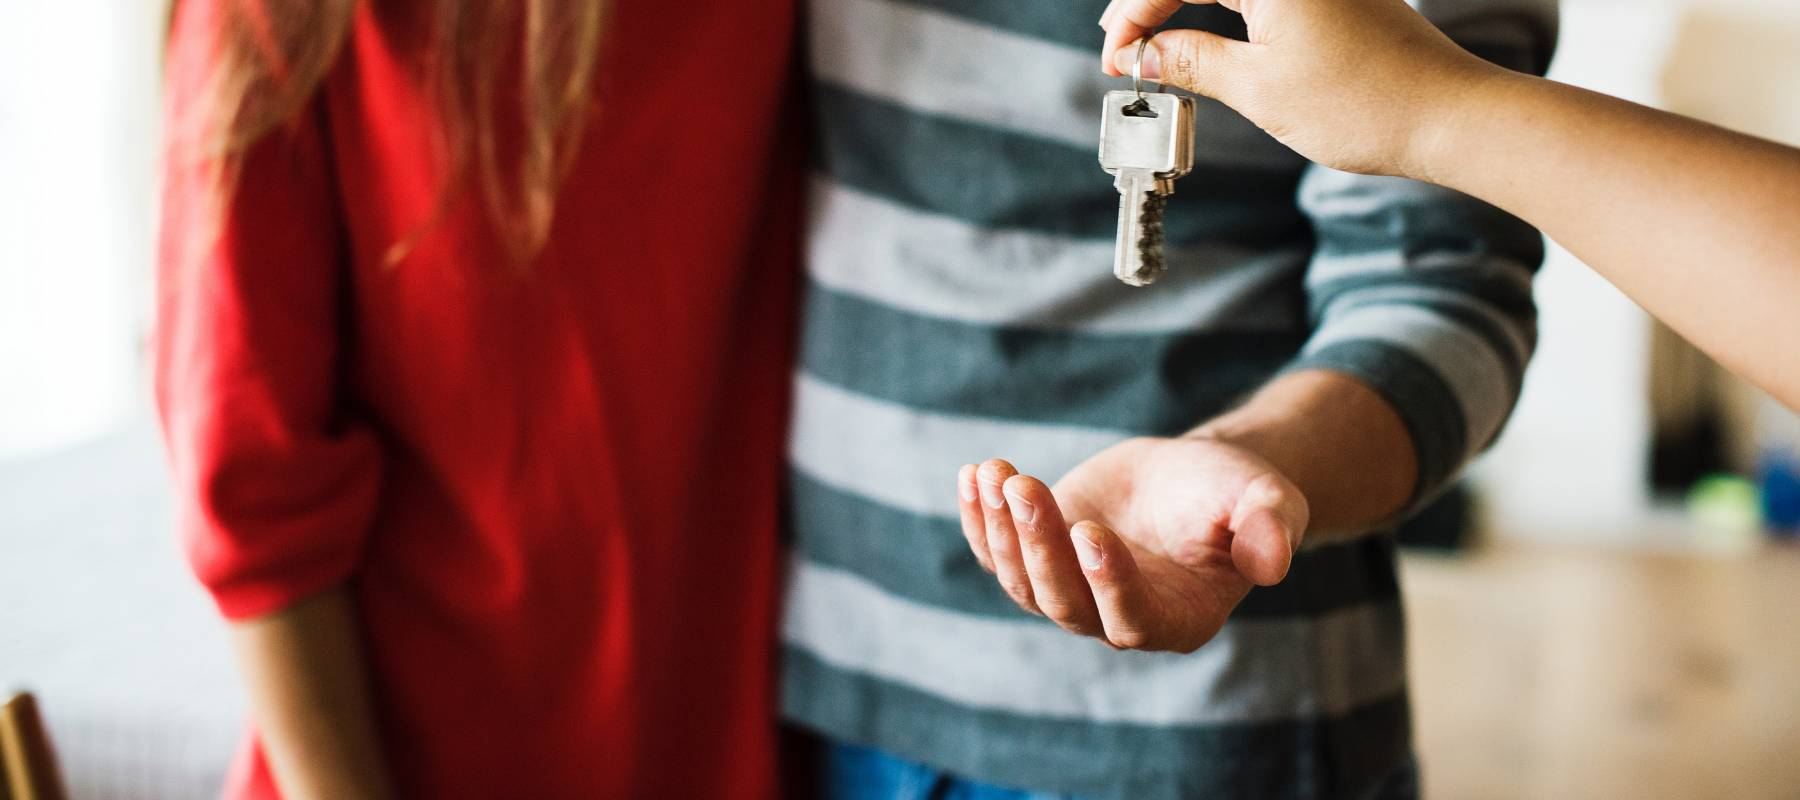 Couple taking the keys to a house